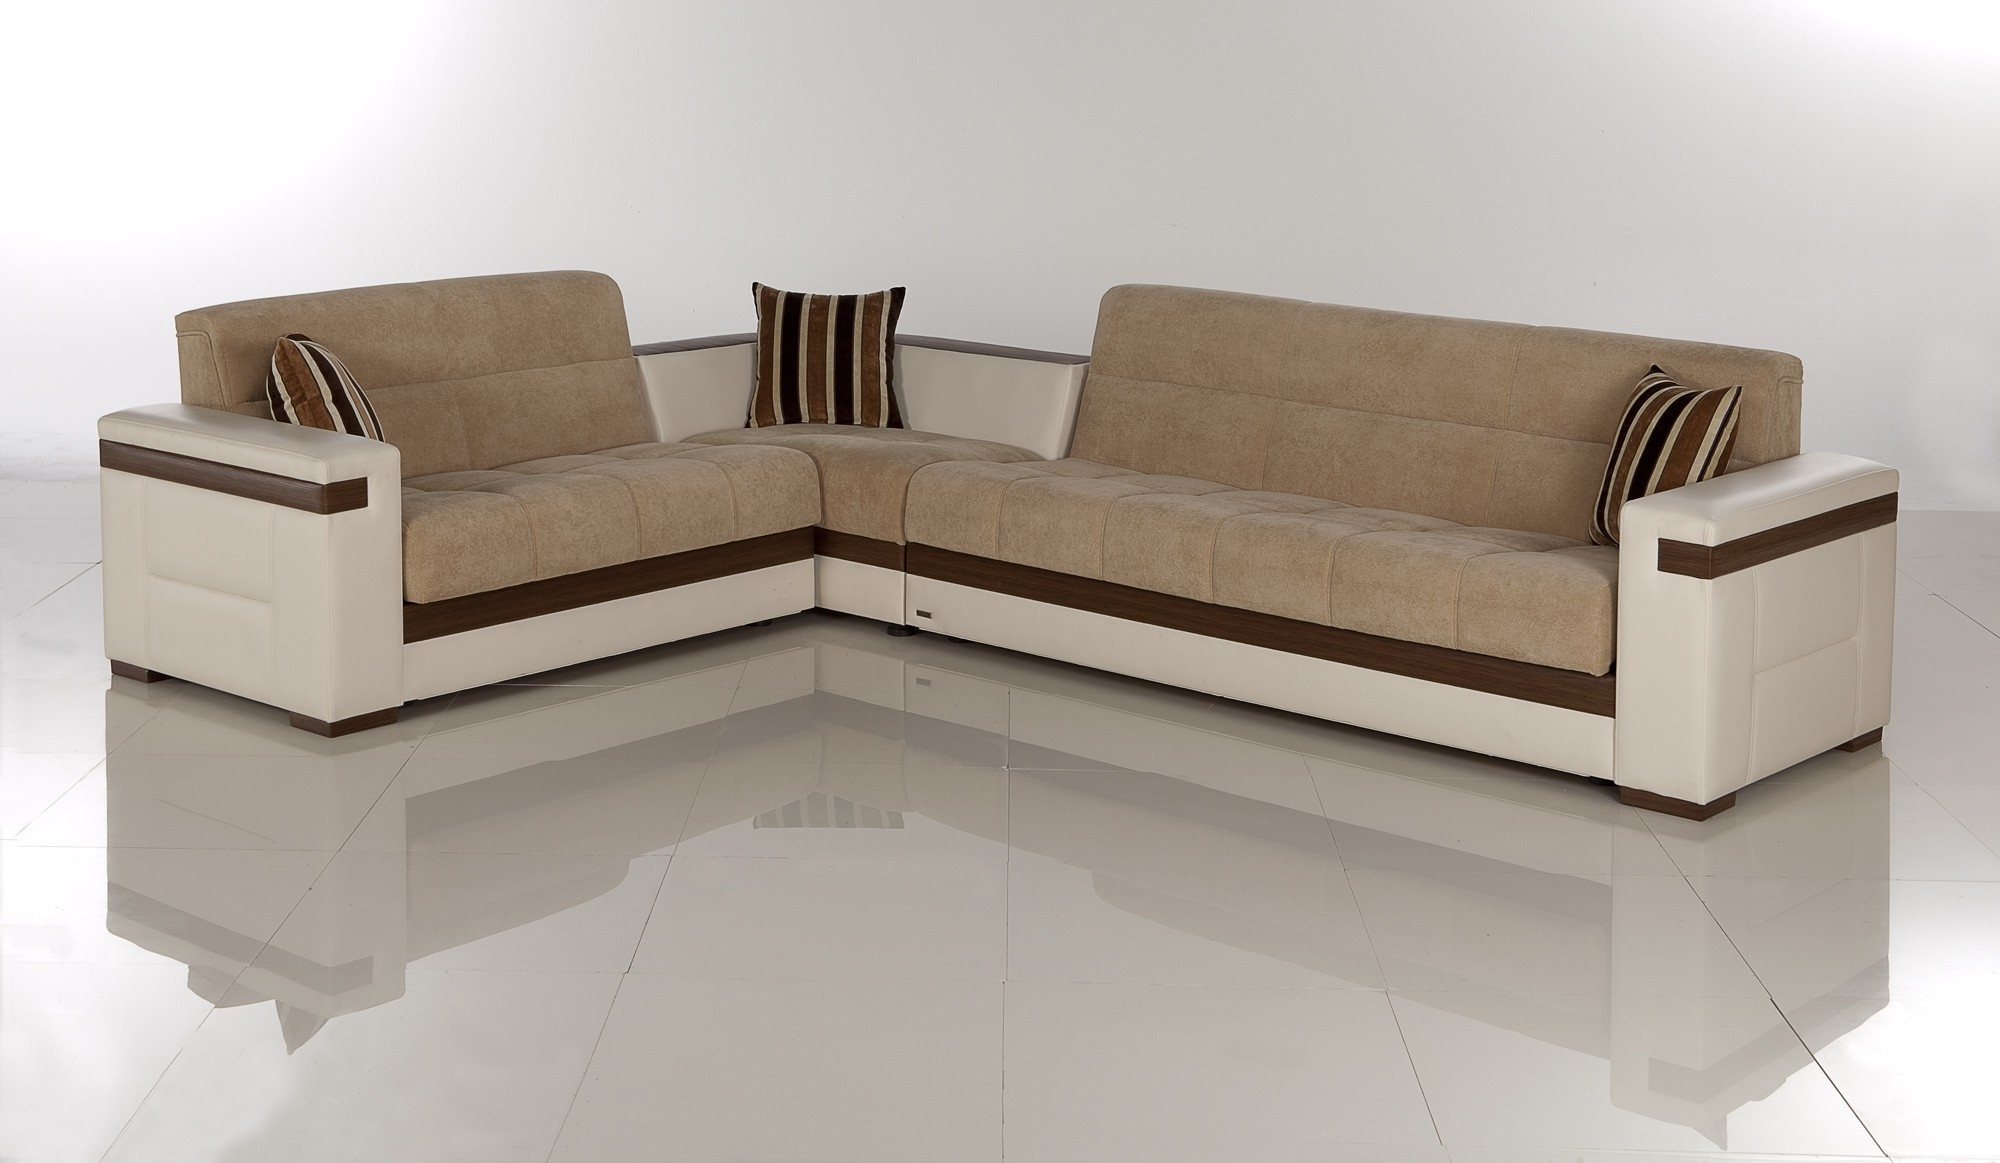 Favorite Recliners Chairs & Sofa : Sectional Sleeper Sofa Ashley With And Within Comfortable Sofas And Chairs (View 11 of 15)